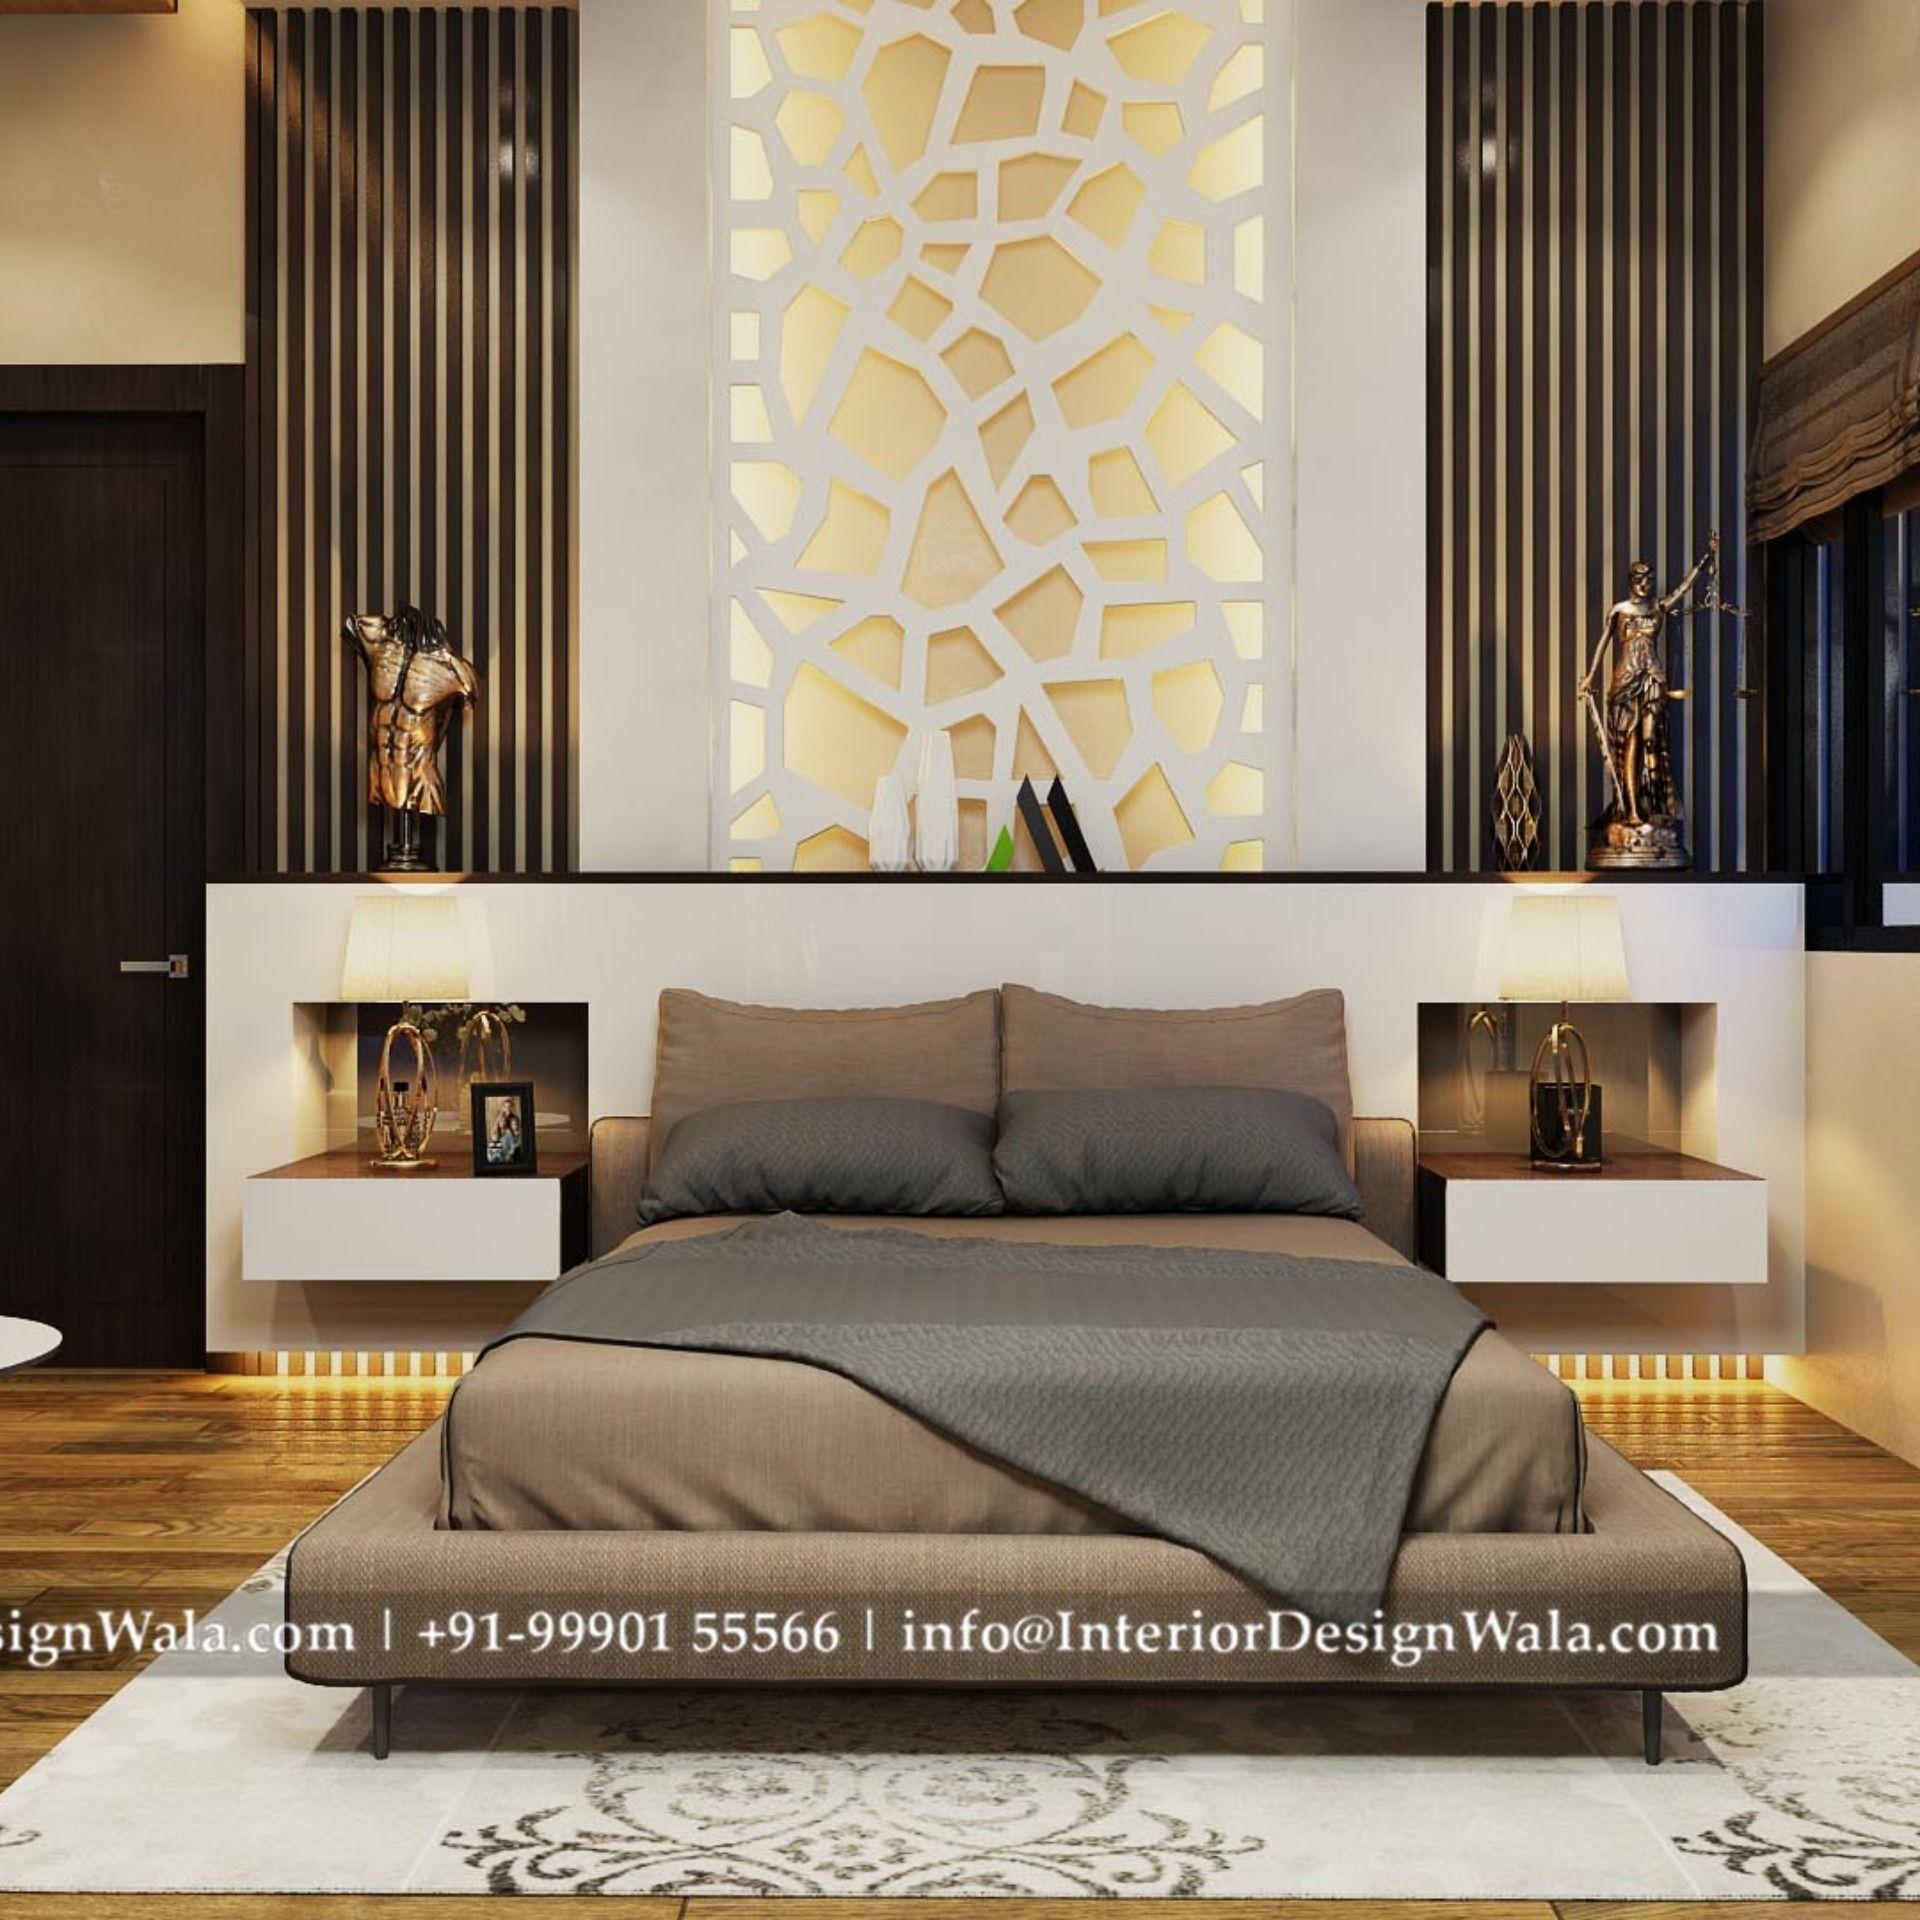 Luxury Bedding Ideas For Your Master Bedroom That Will Make You Comfortable In 2020 Luxury Bedroom Master Luxurious Bedrooms Bedroom Bed Design